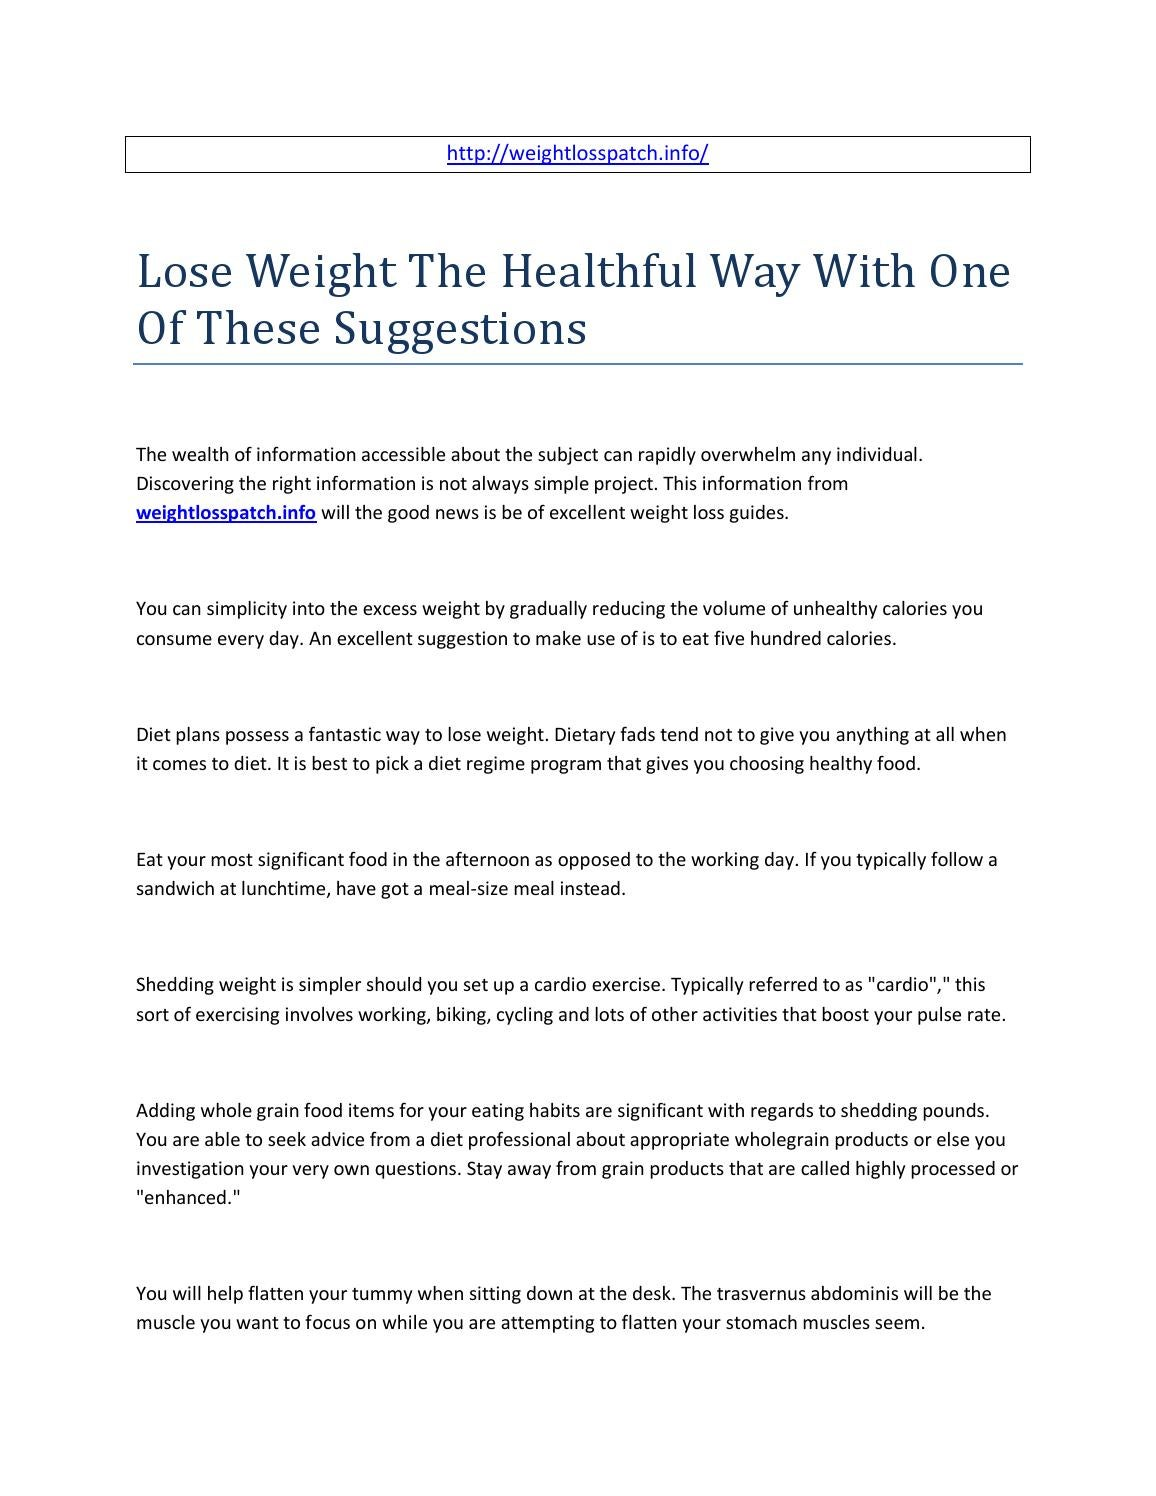 Weight loss plateau breaker weight watchers image 10